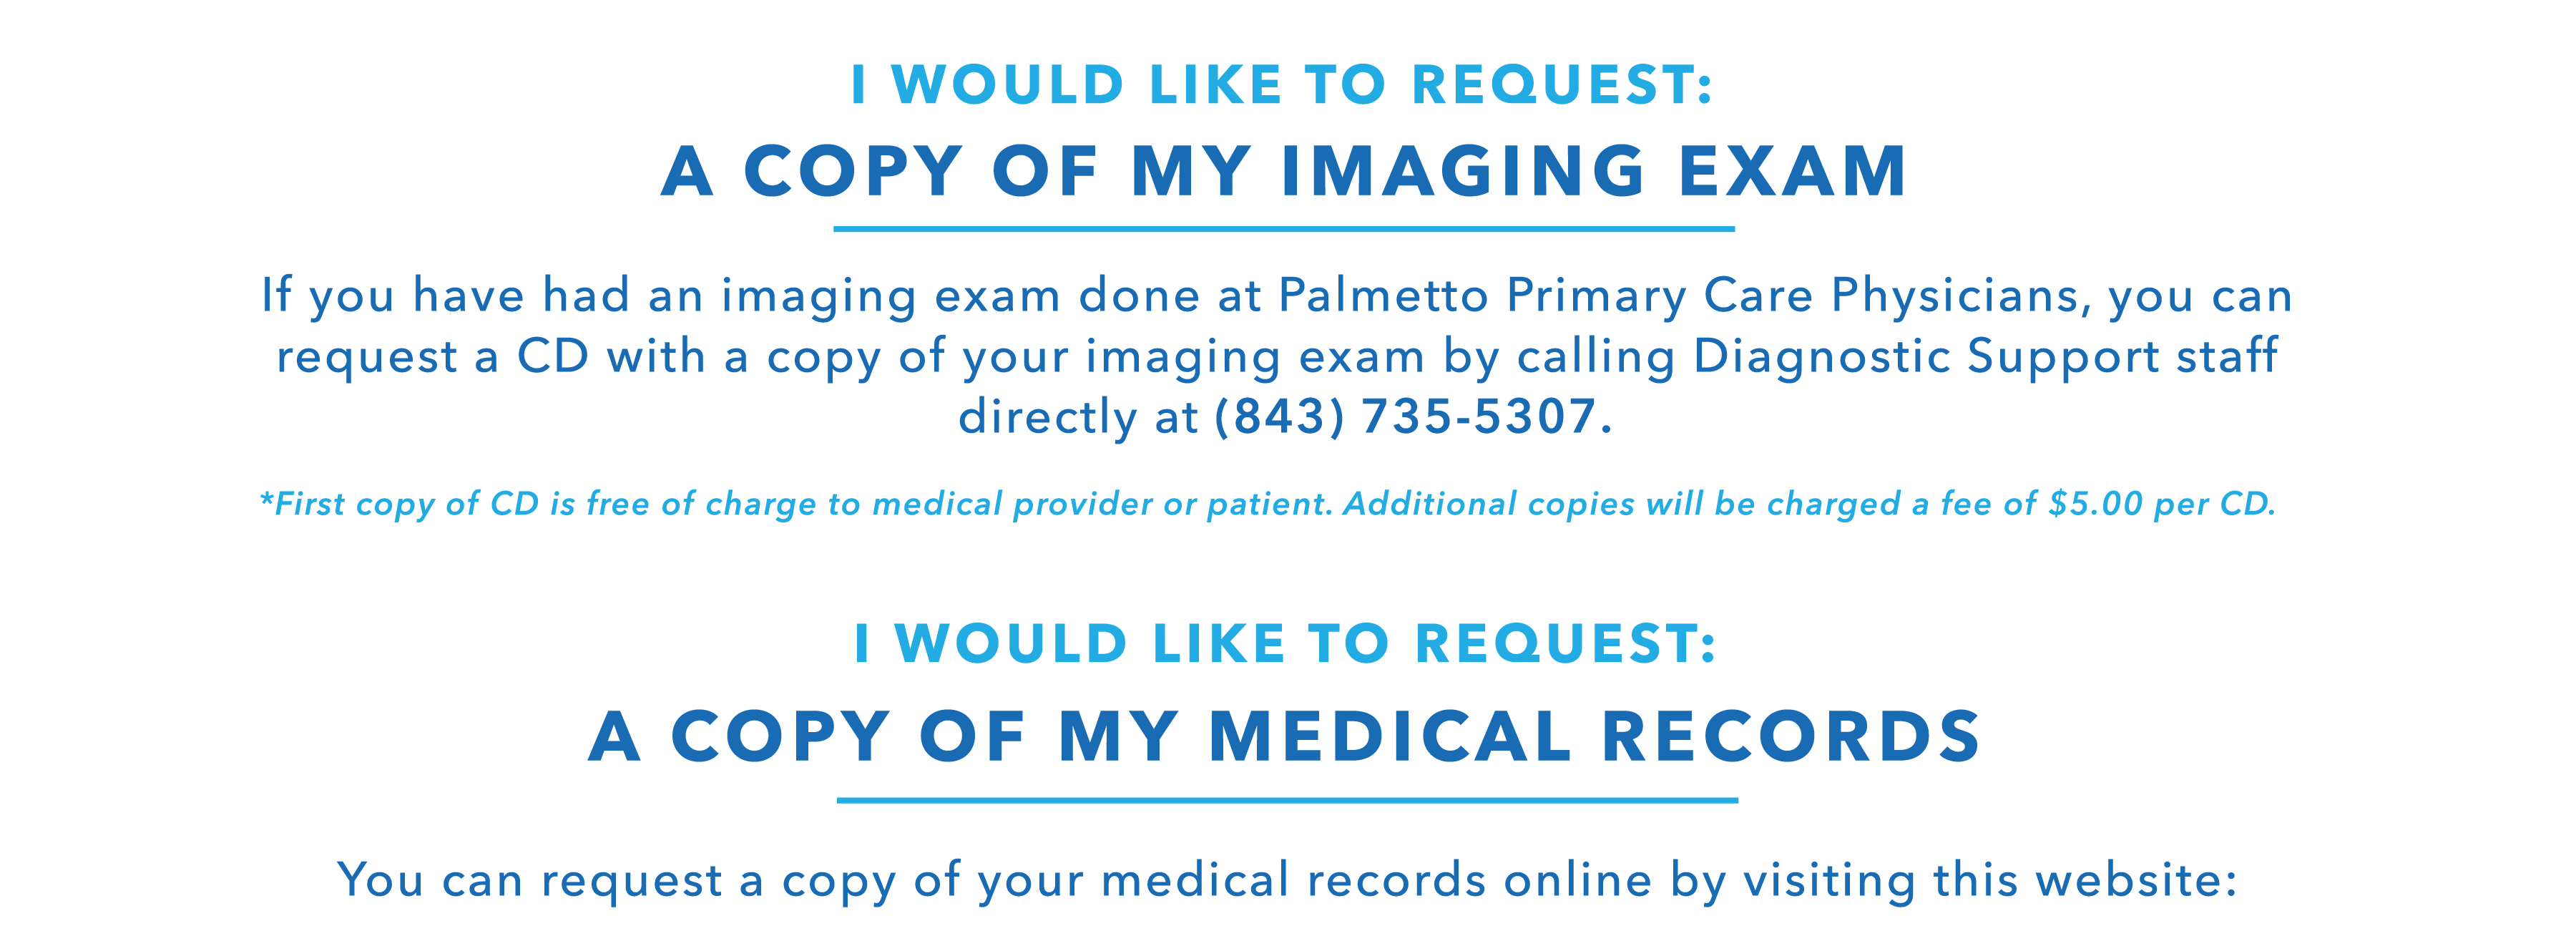 MedicalRecords1.png